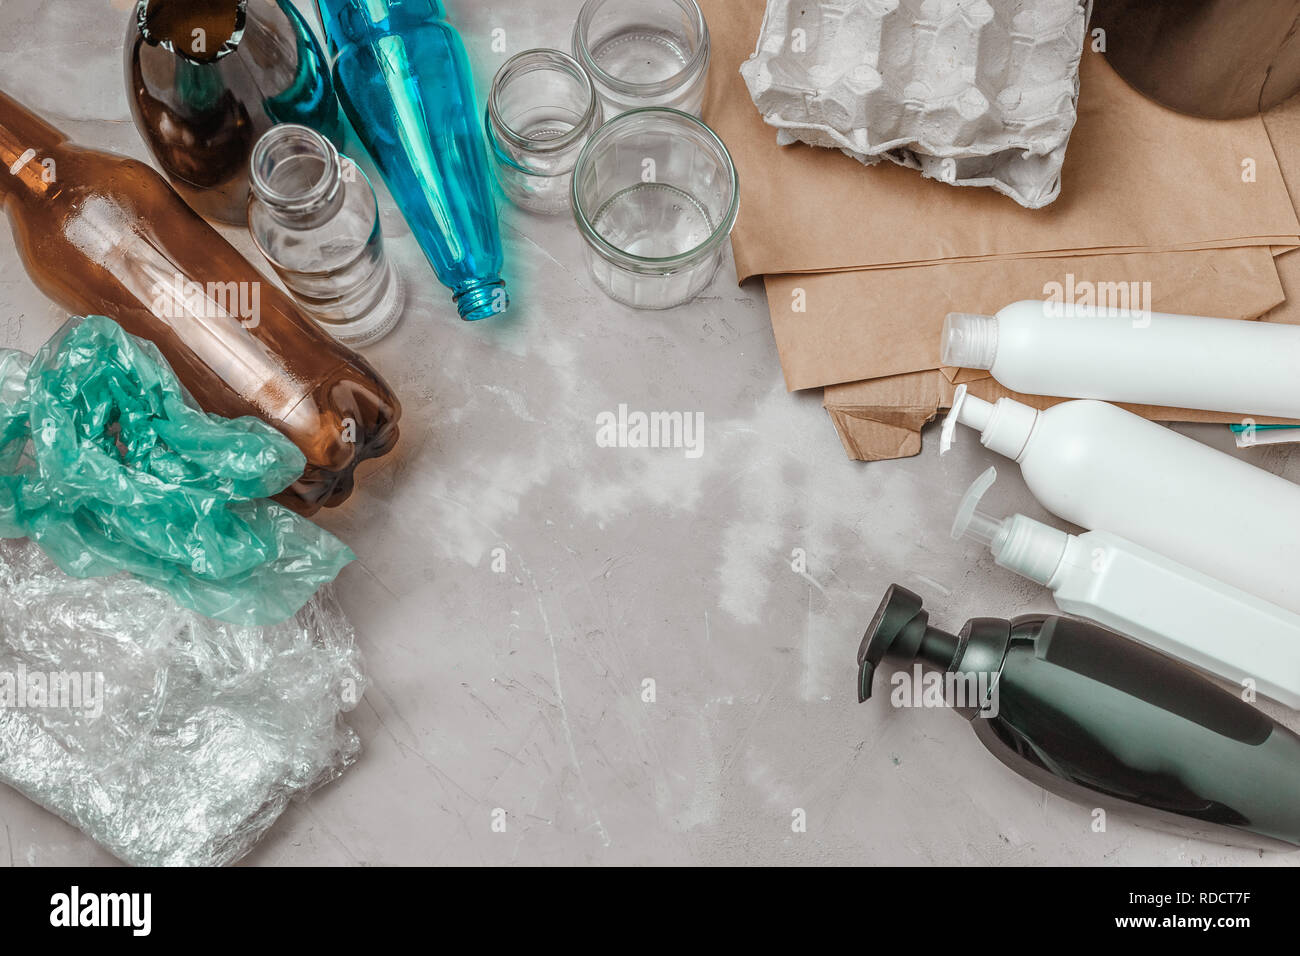 Differnt types of waste, plastic bag, crumpled paper, plastic containers, glass and bottles on the table. Management waste sorting concept Stock Photo